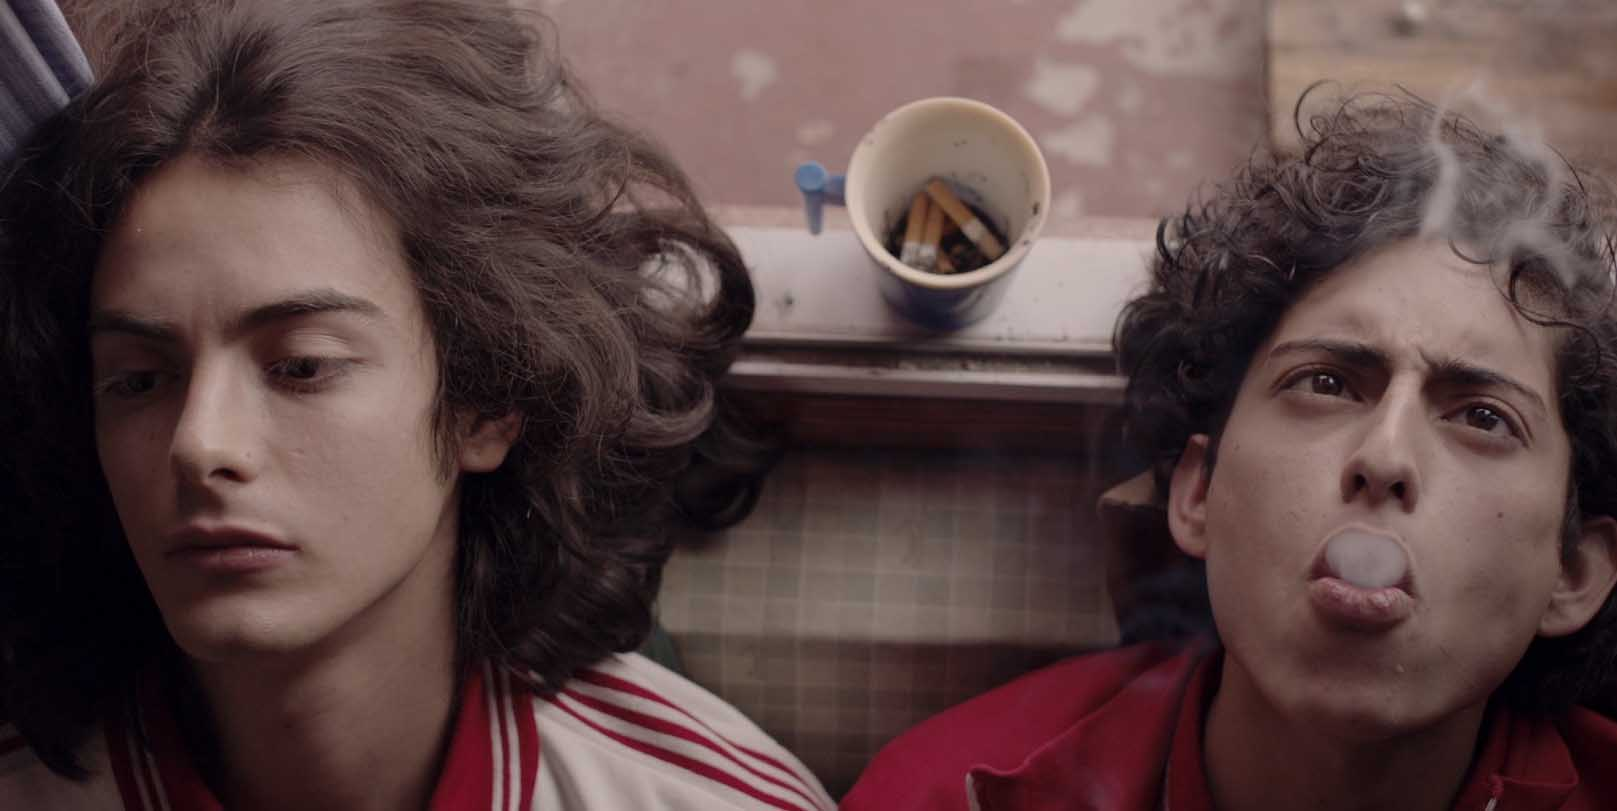 TRAILER: 'This is Not Berlin' is a Coming-of-Age Story Set in Mexico City's 80s Art Punk Underworld